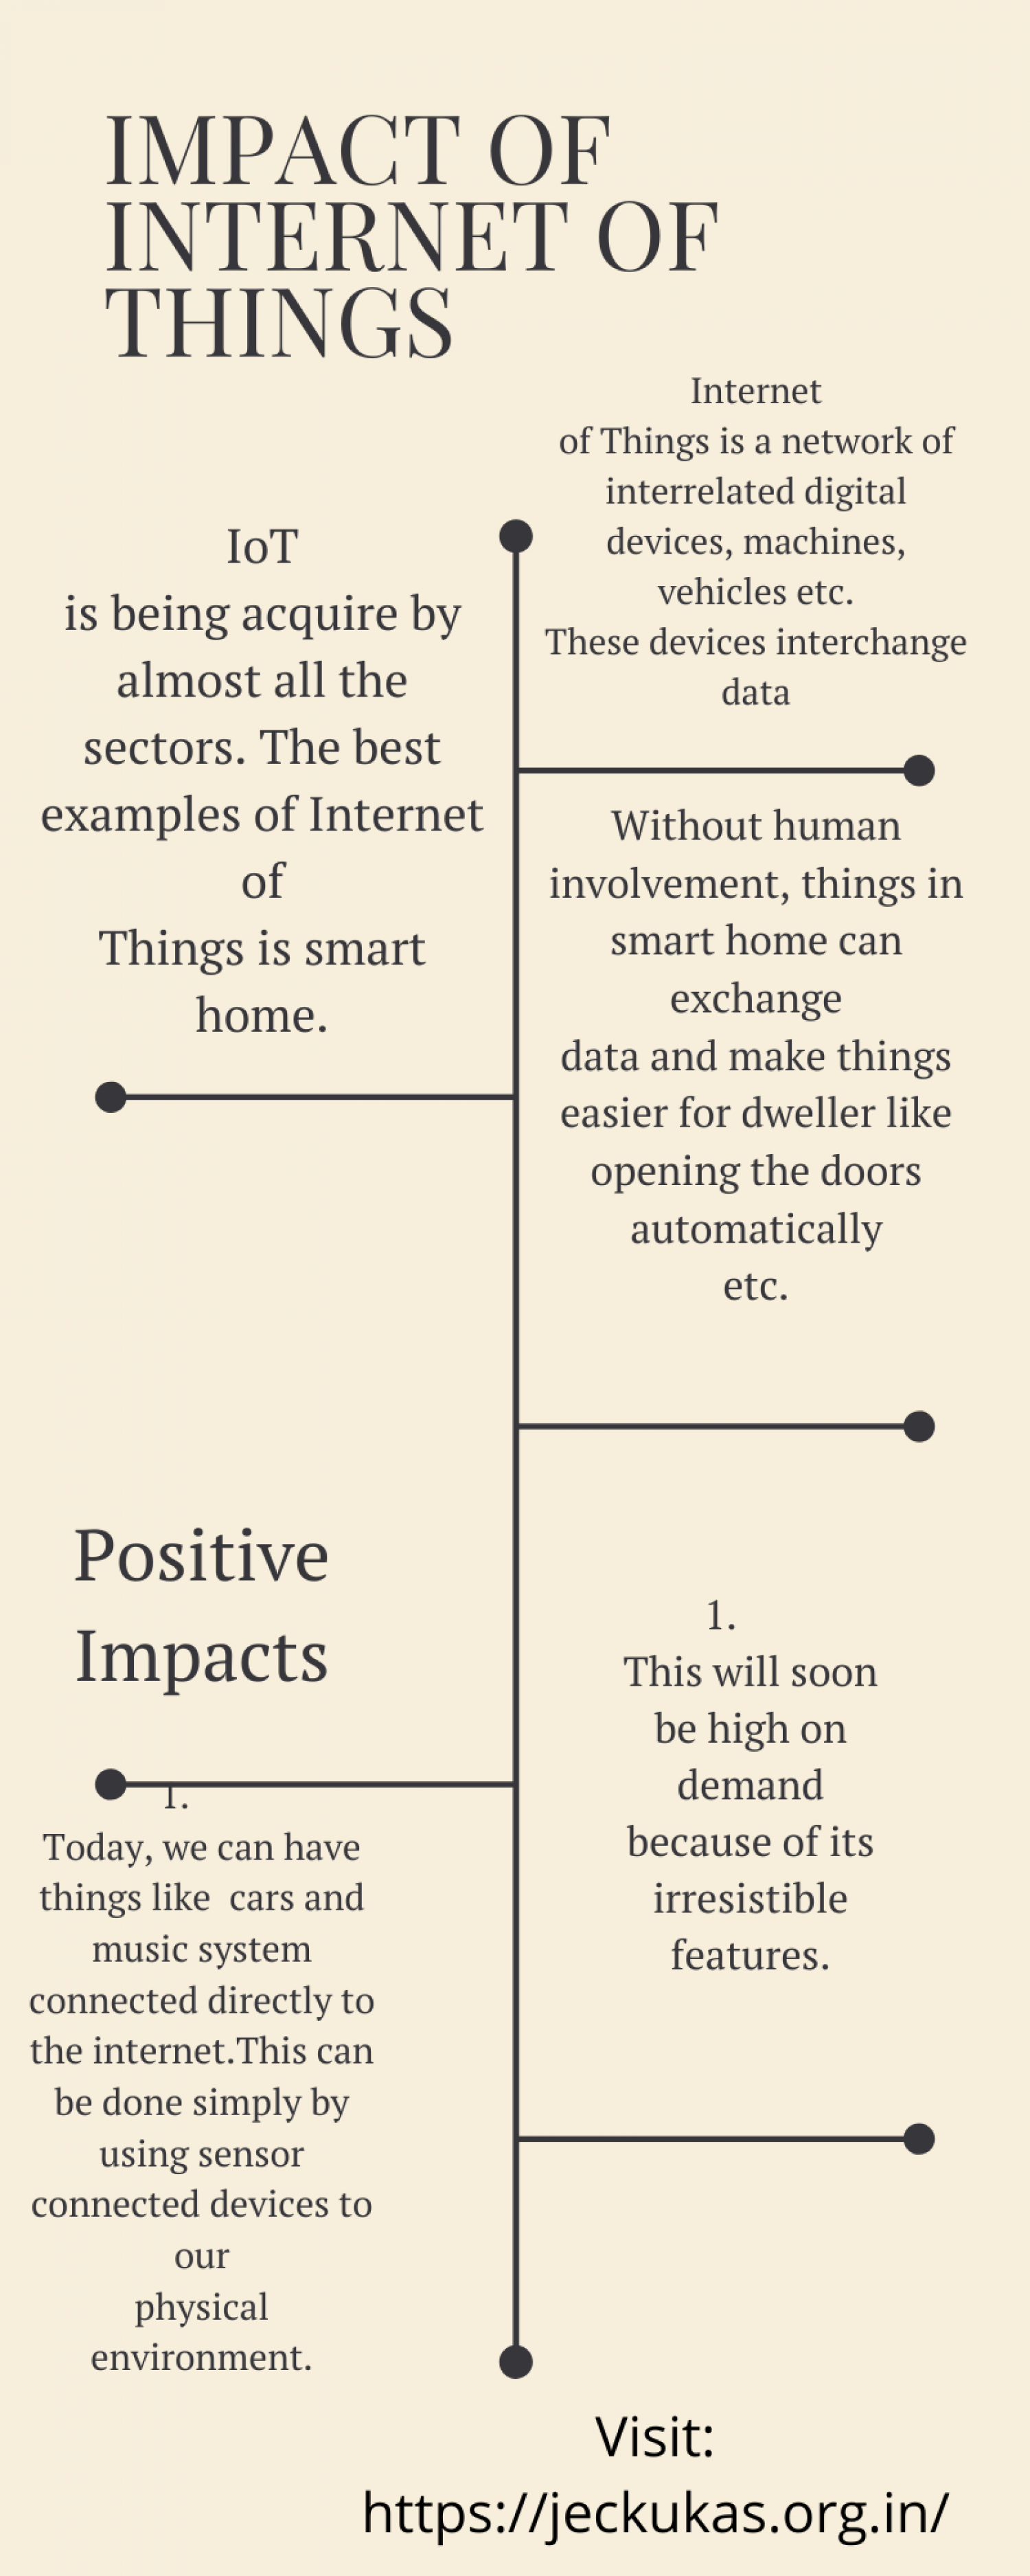 Impact of Internet of Things Infographic